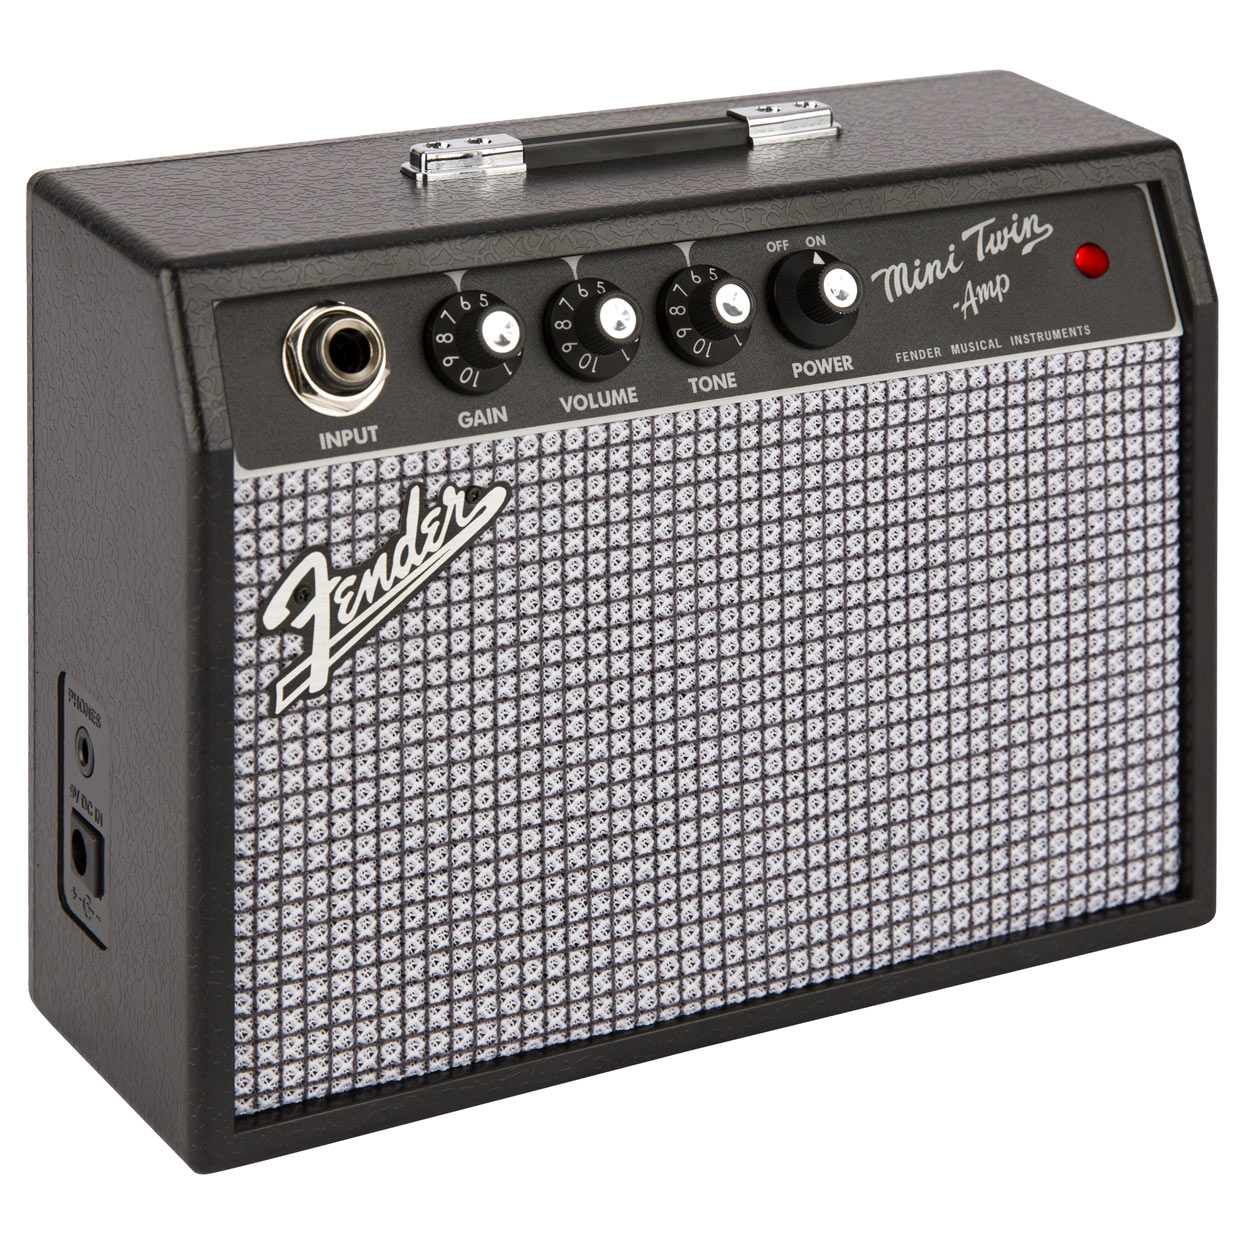 Fender Mini '65 Twin Amp - Amplificador mini guitarra